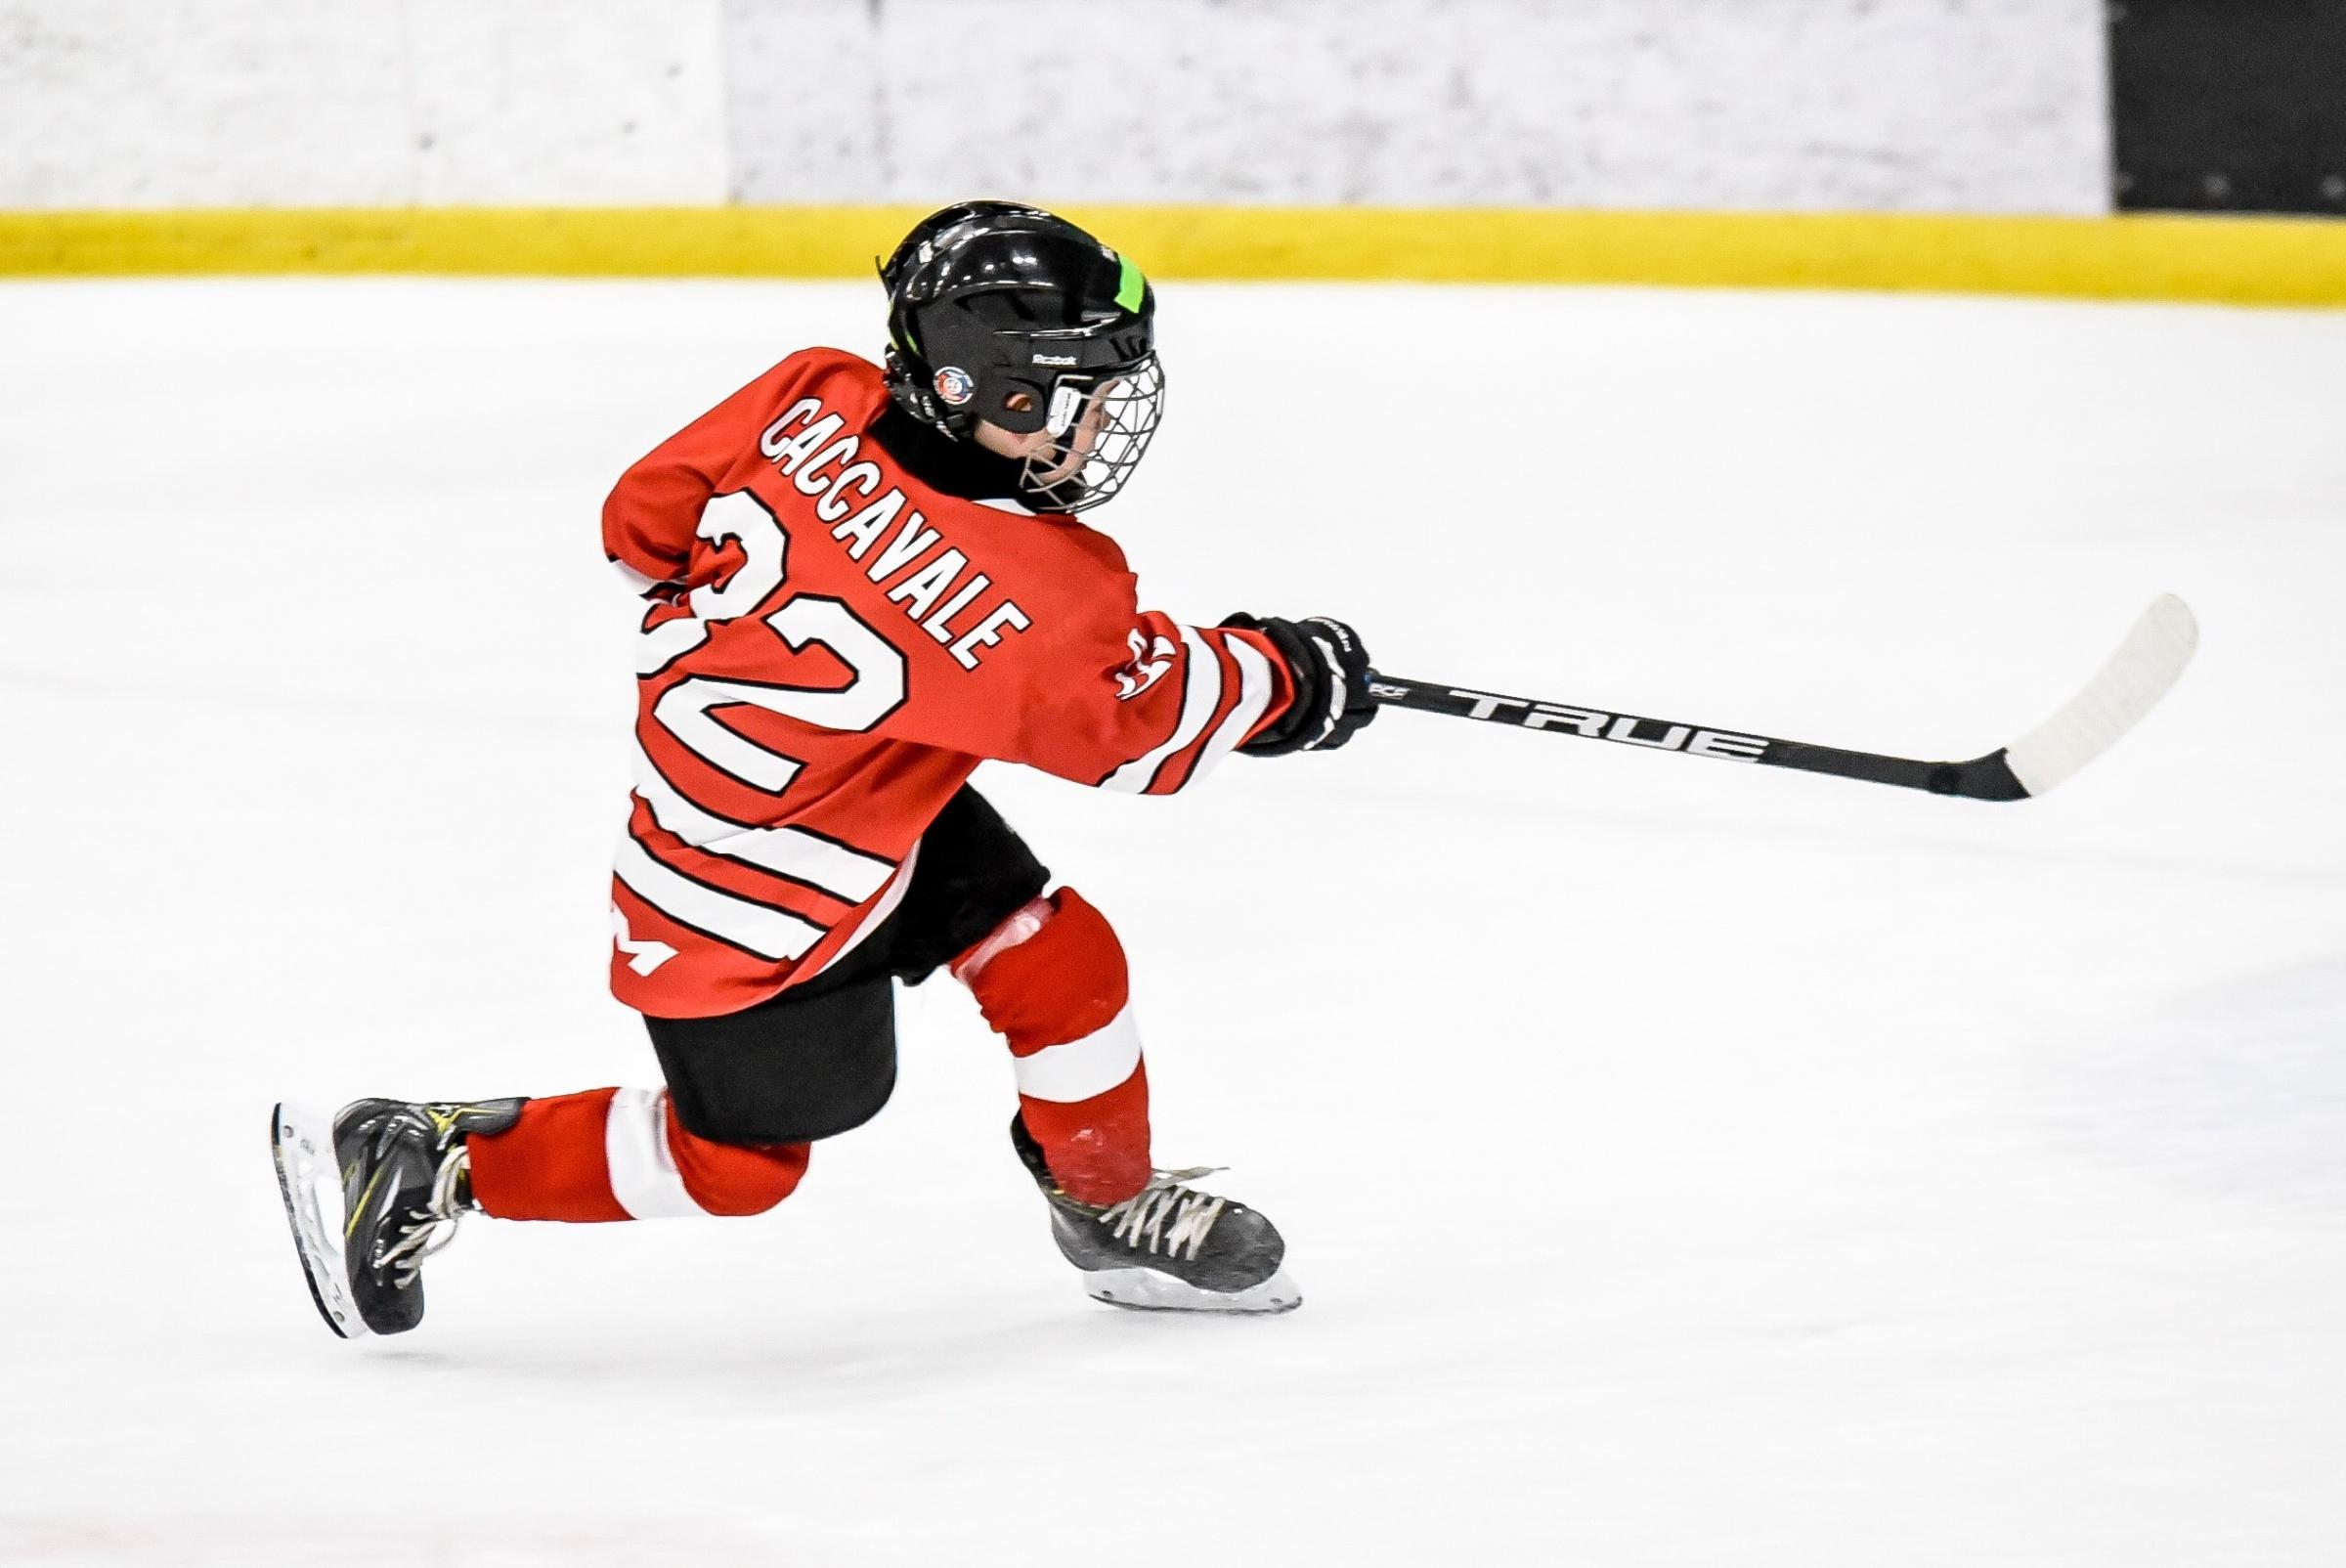 Chippenham schoolboy gets his skates on ready for Canadian tournament